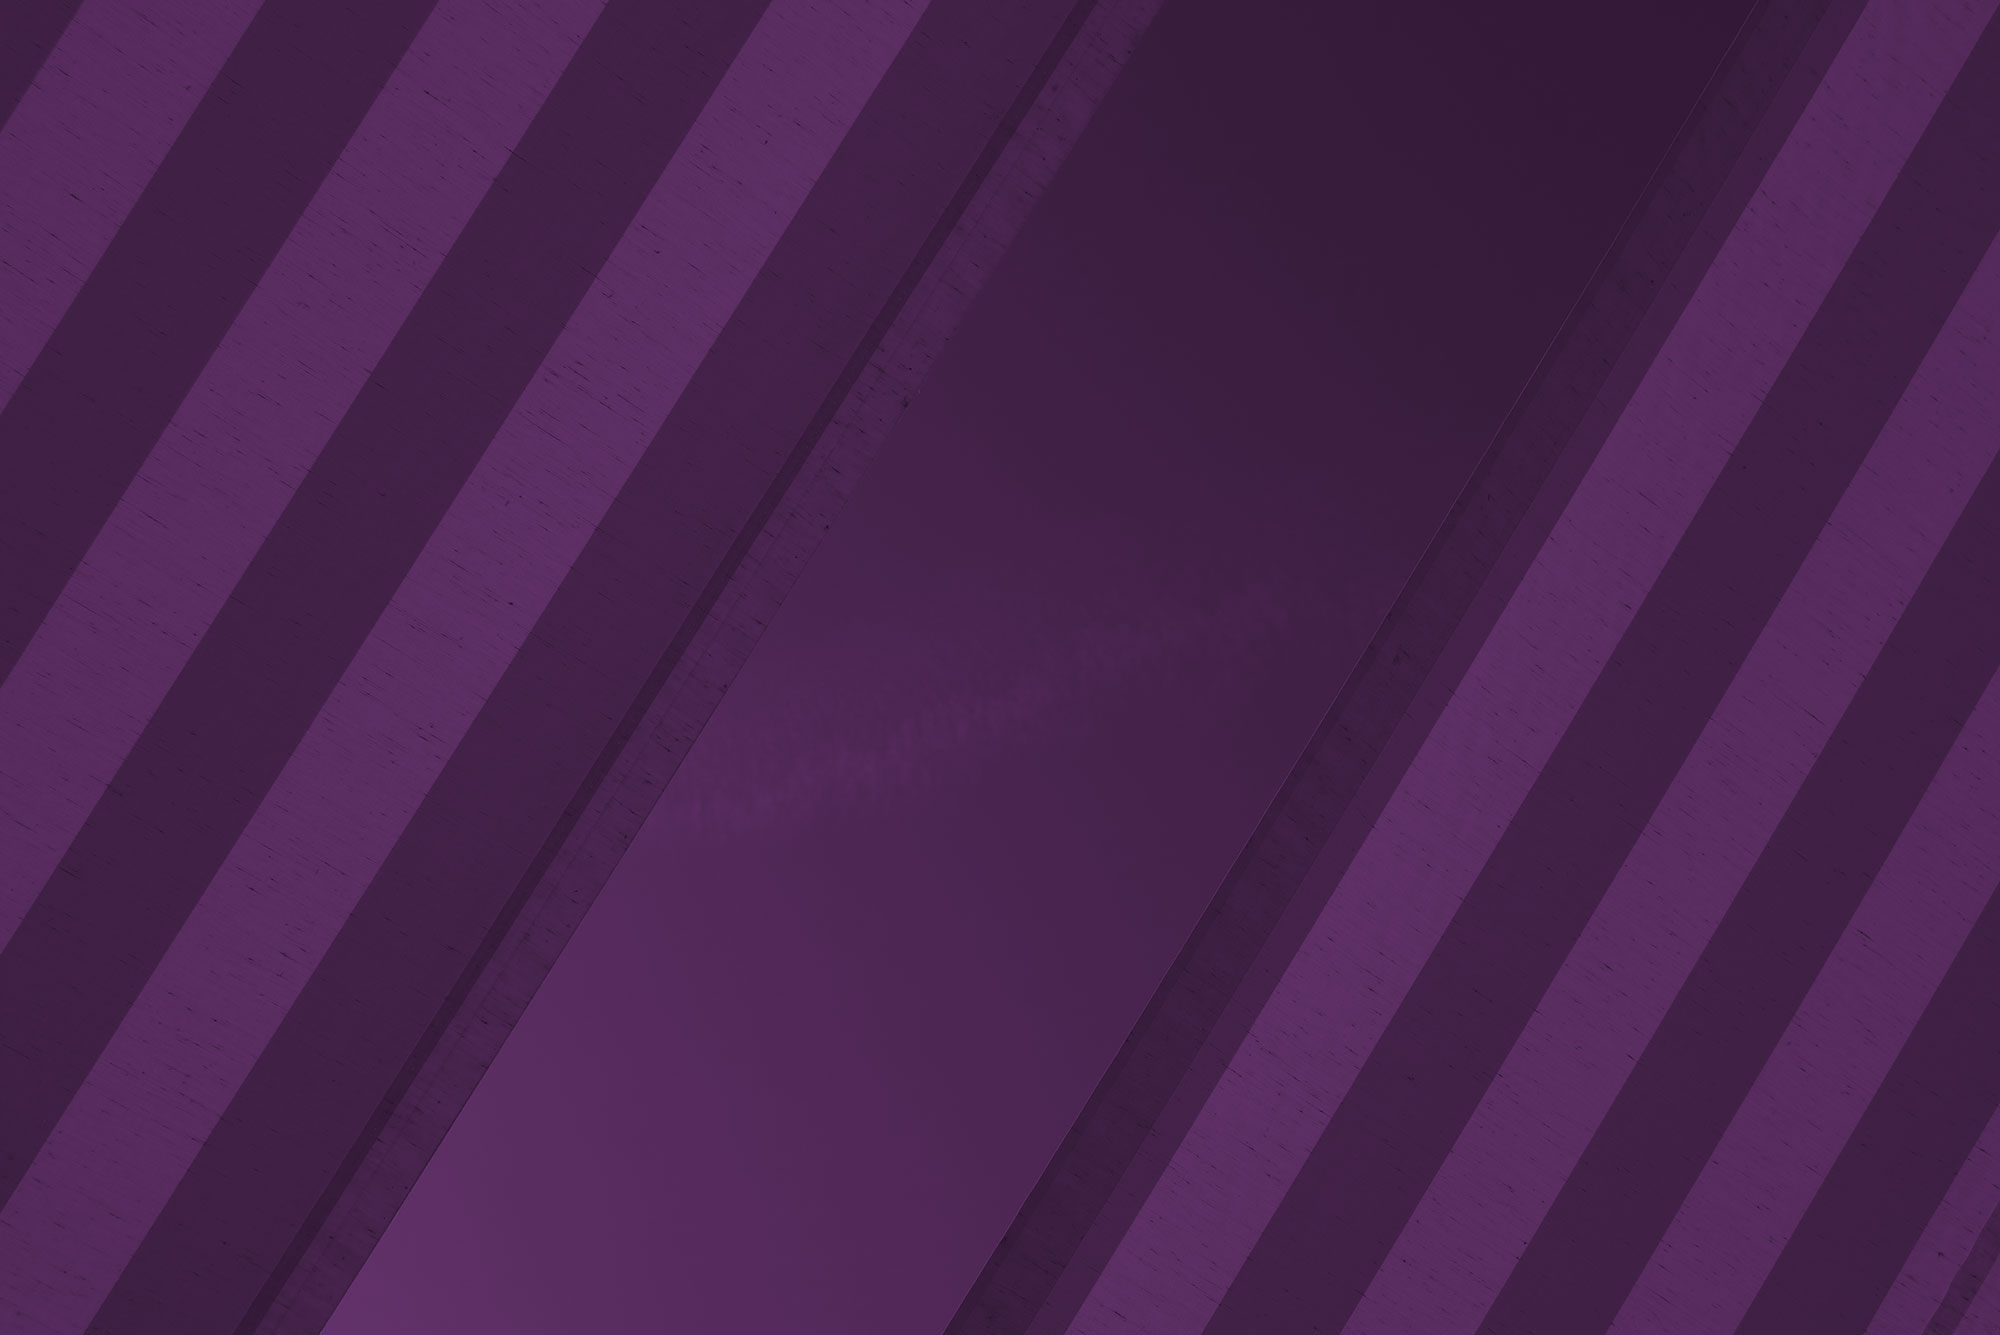 Purple cover of a skylight image